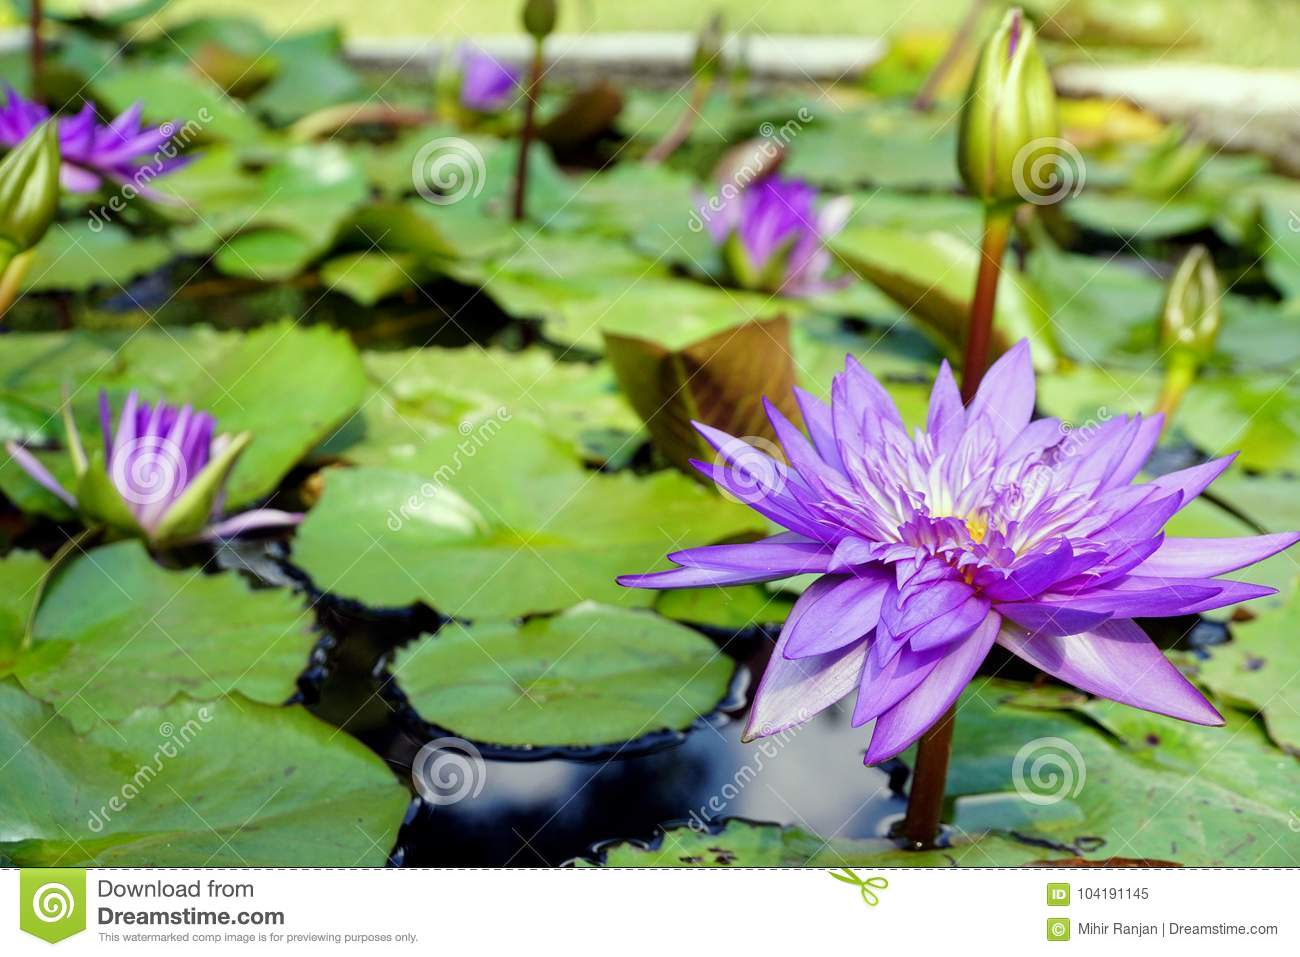 The Purple Color Water Lily Flowers And Buds. Stock Image - Image of ...